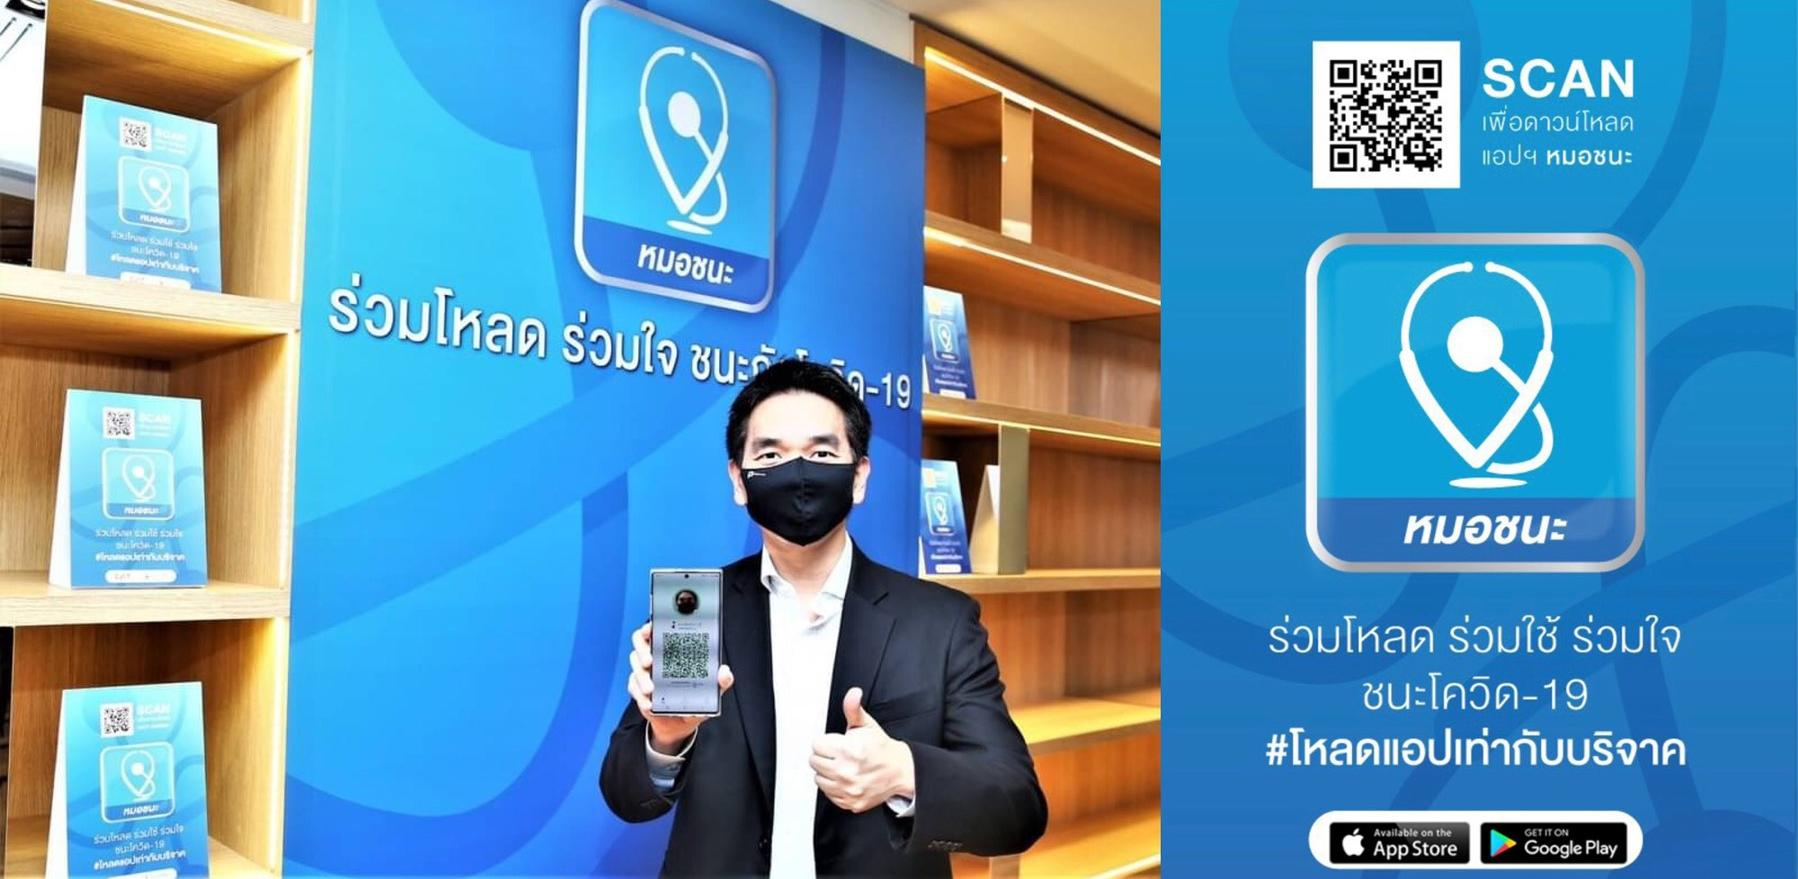 Thailand launches Mor Chana mobile app to enhance contact tracing efforts to help stop the spread of COVID-19